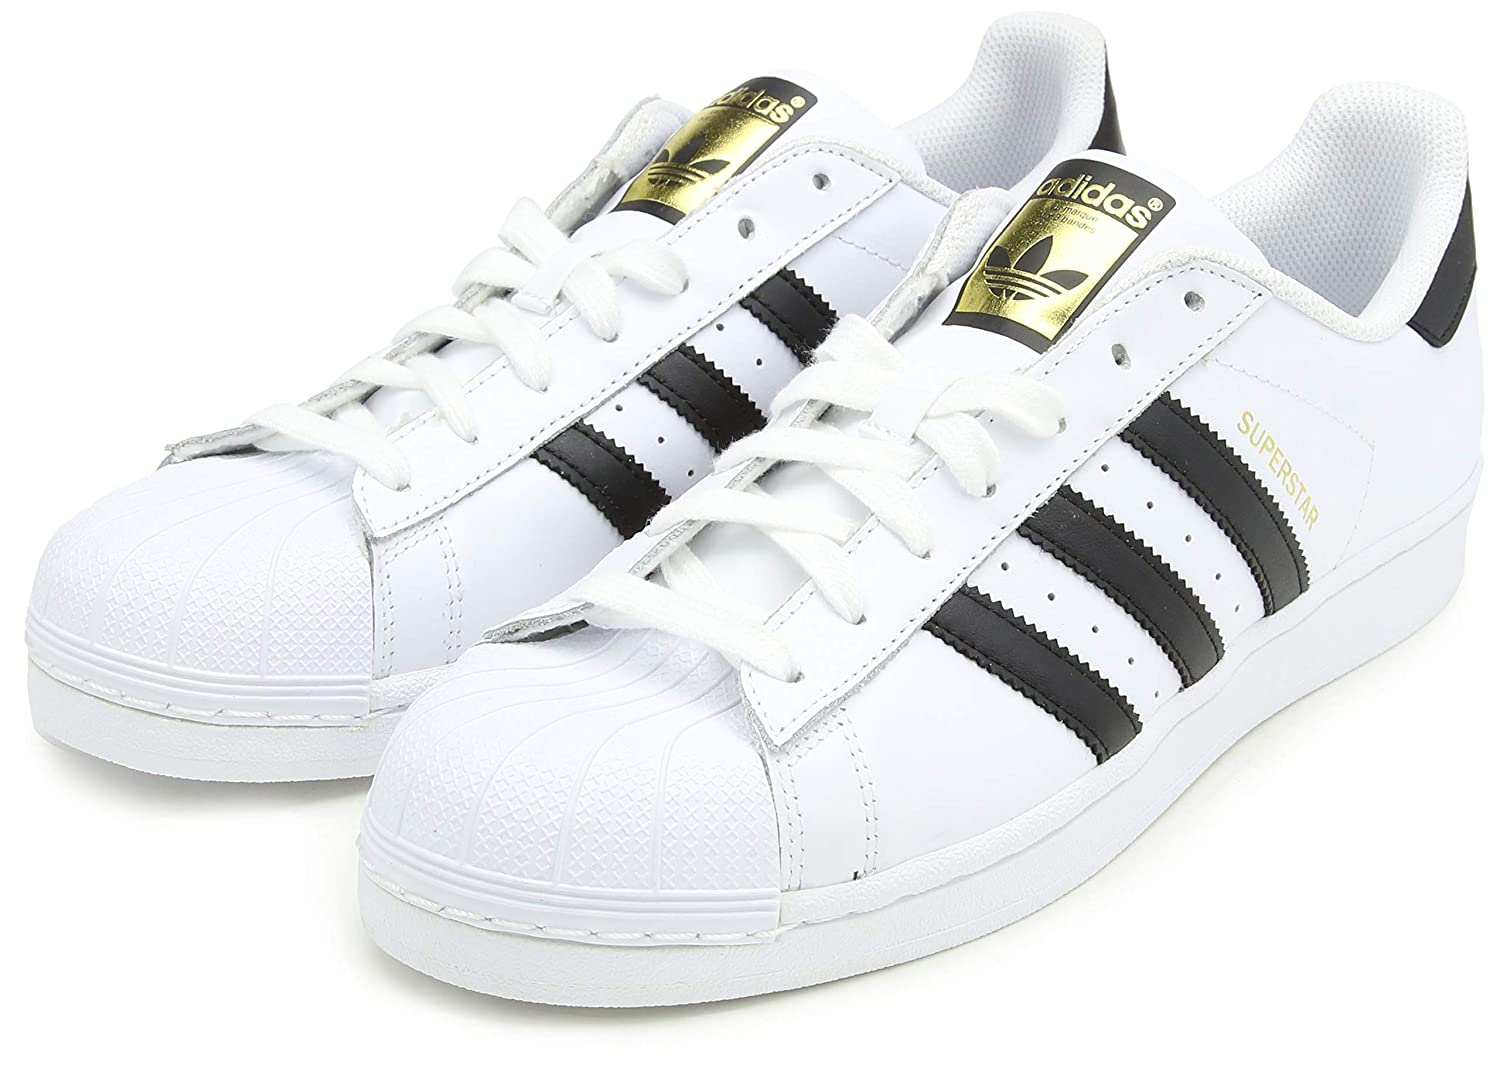 new style 953f8 19237 Amazon.com   adidas Originals Men s Superstar   Shoes